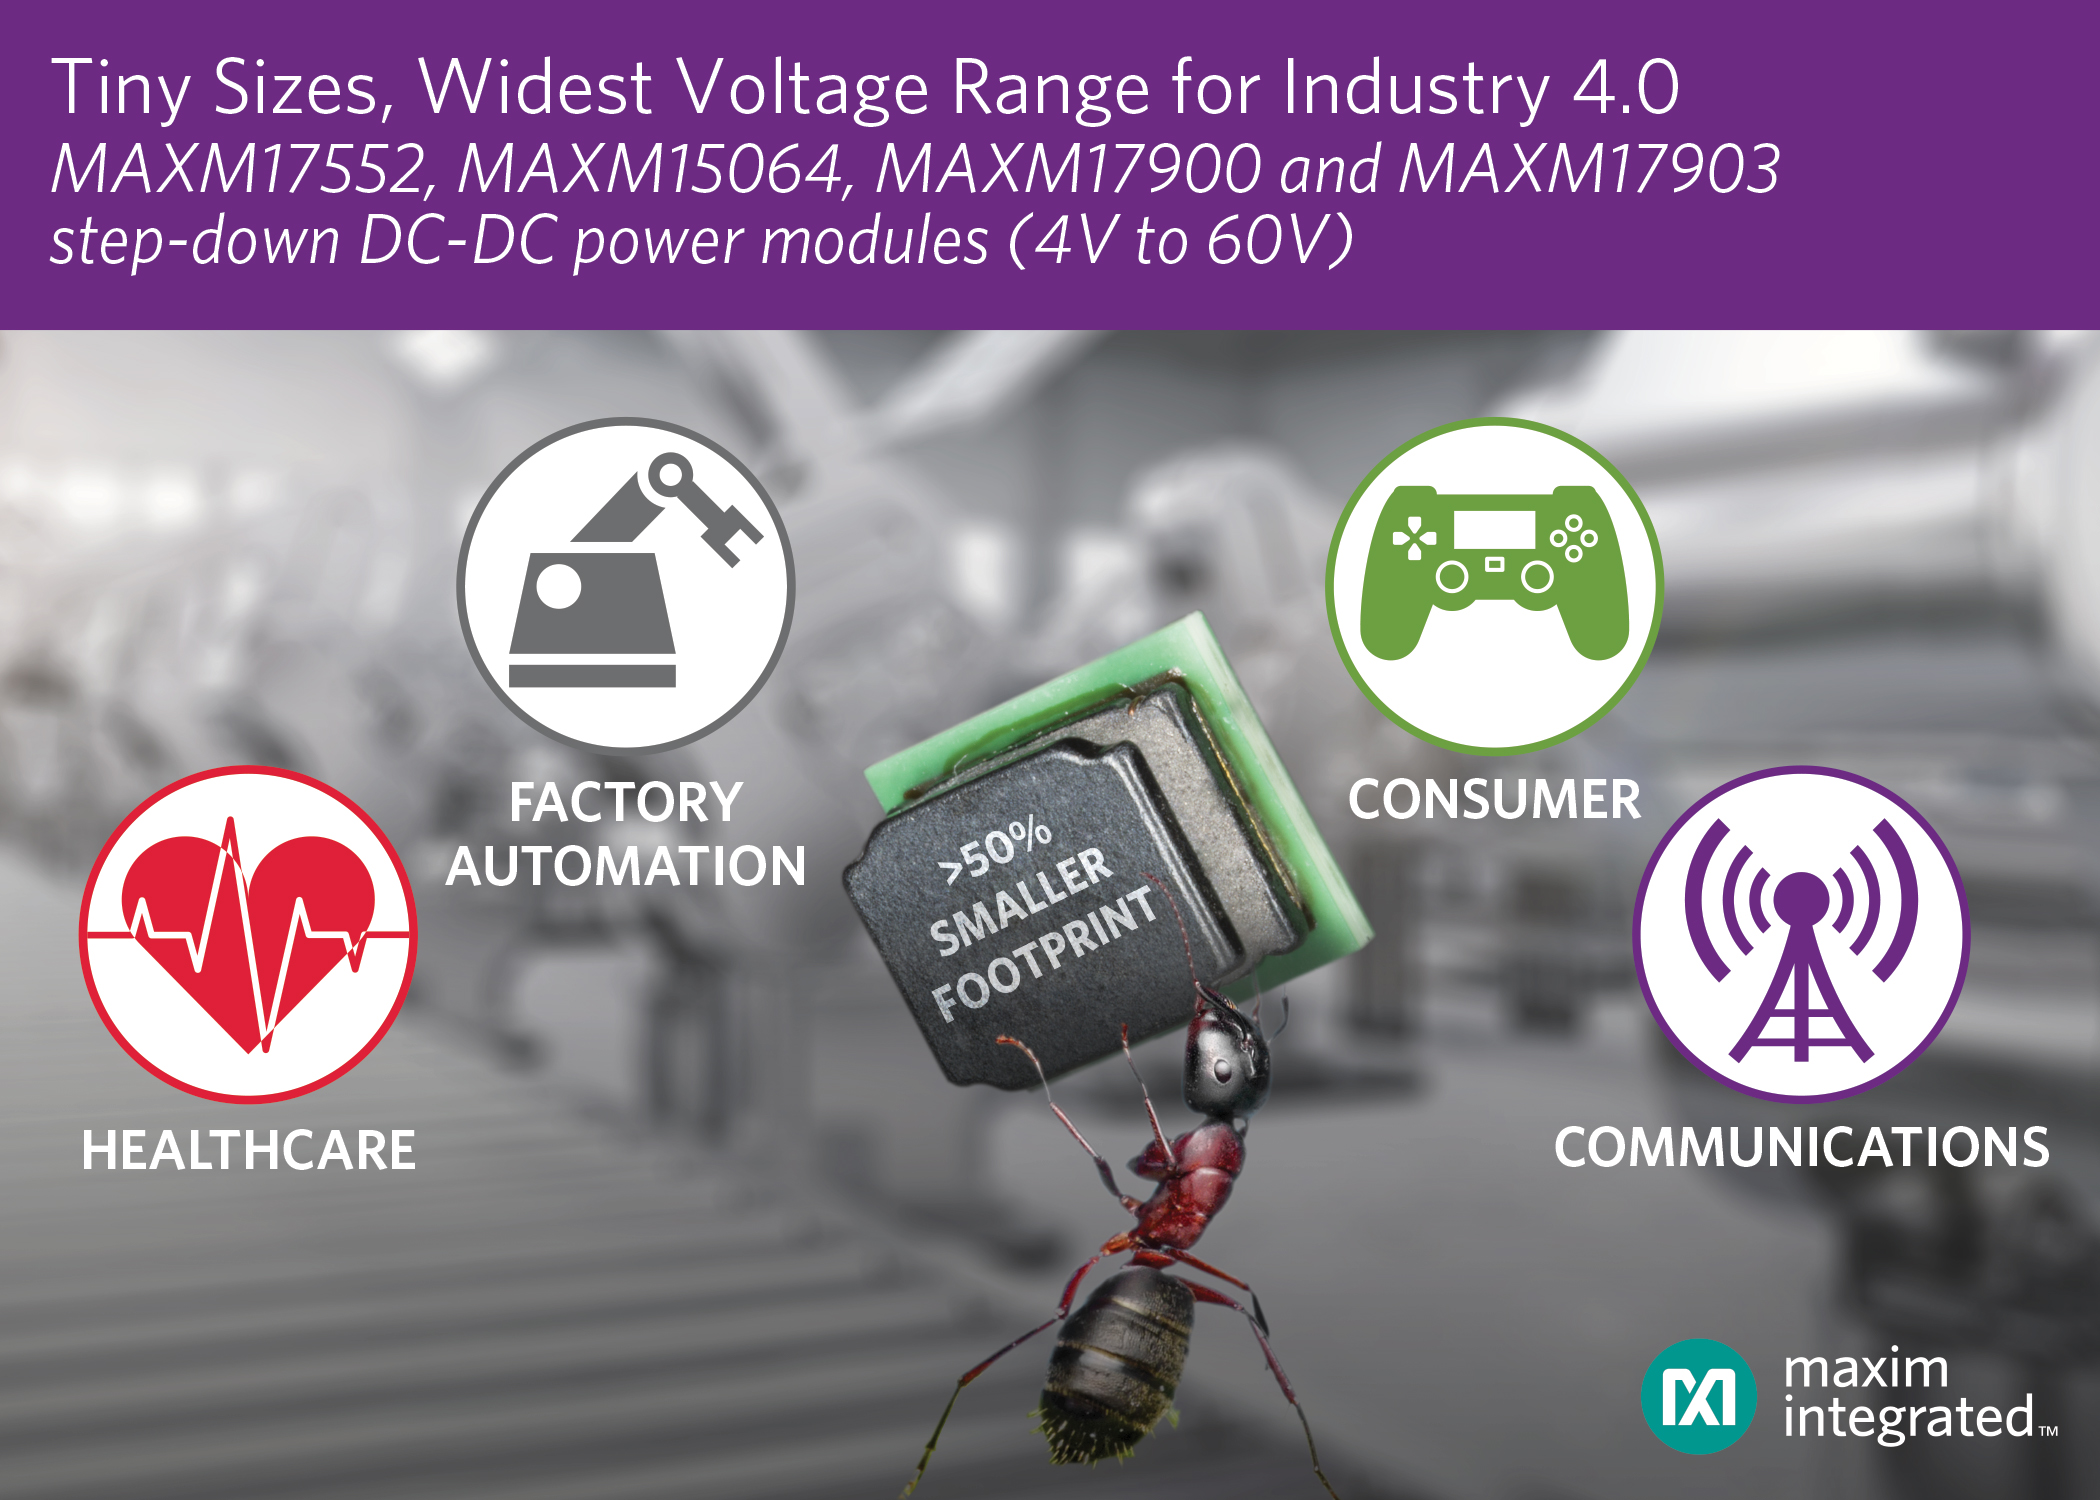 Ultra-Small DC-DC Power Modules Provide Voltages up to 60V